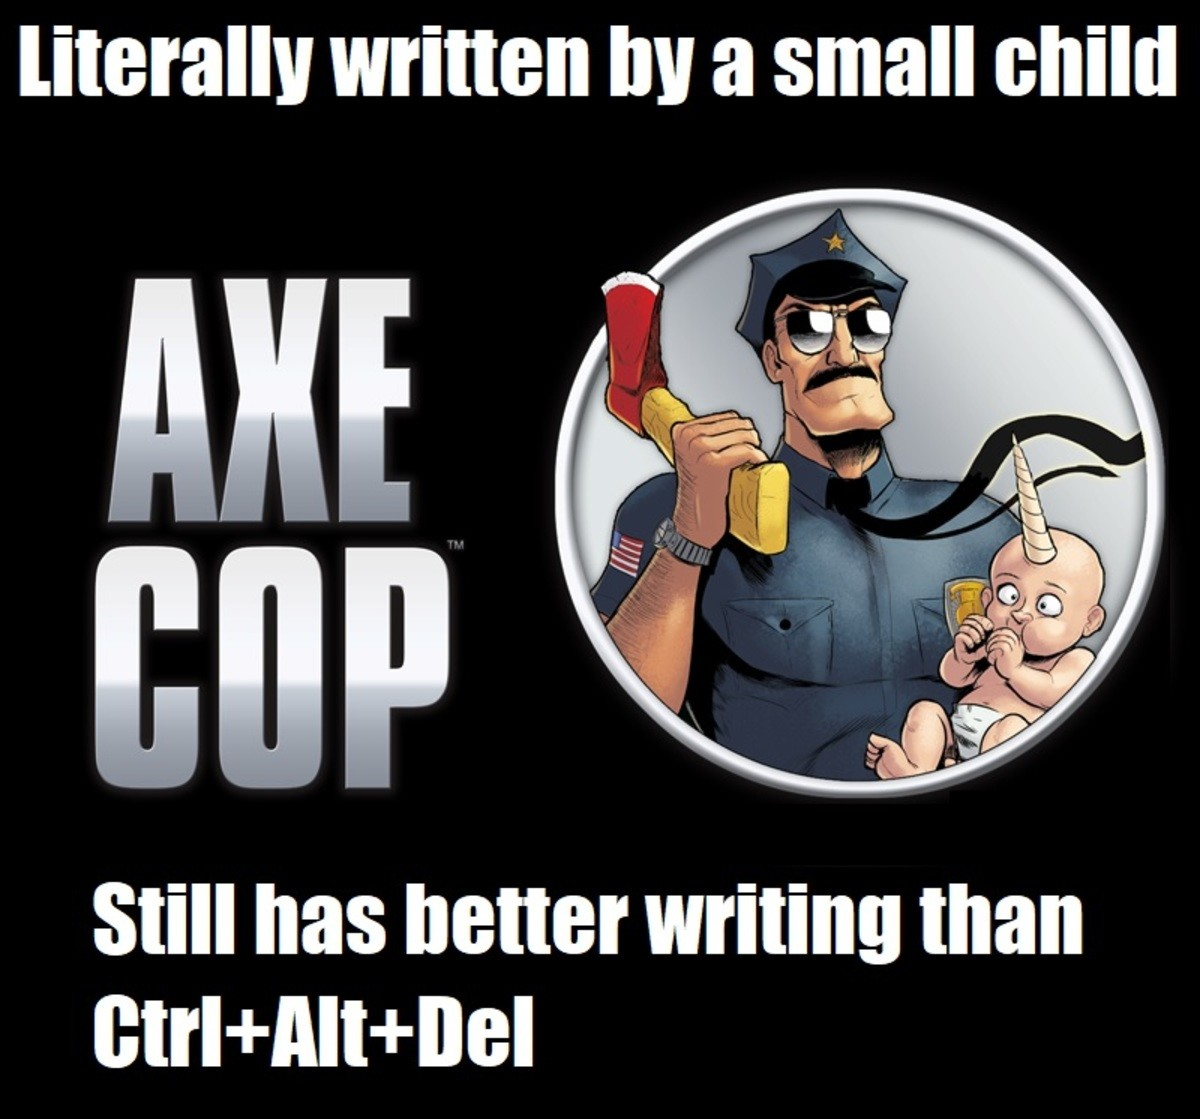 He'll Chop Off Your Heads. If you haven't watched/read Axe Cop, you should seriously do it when you get the chance. Both the webcomic and the TV show kick major